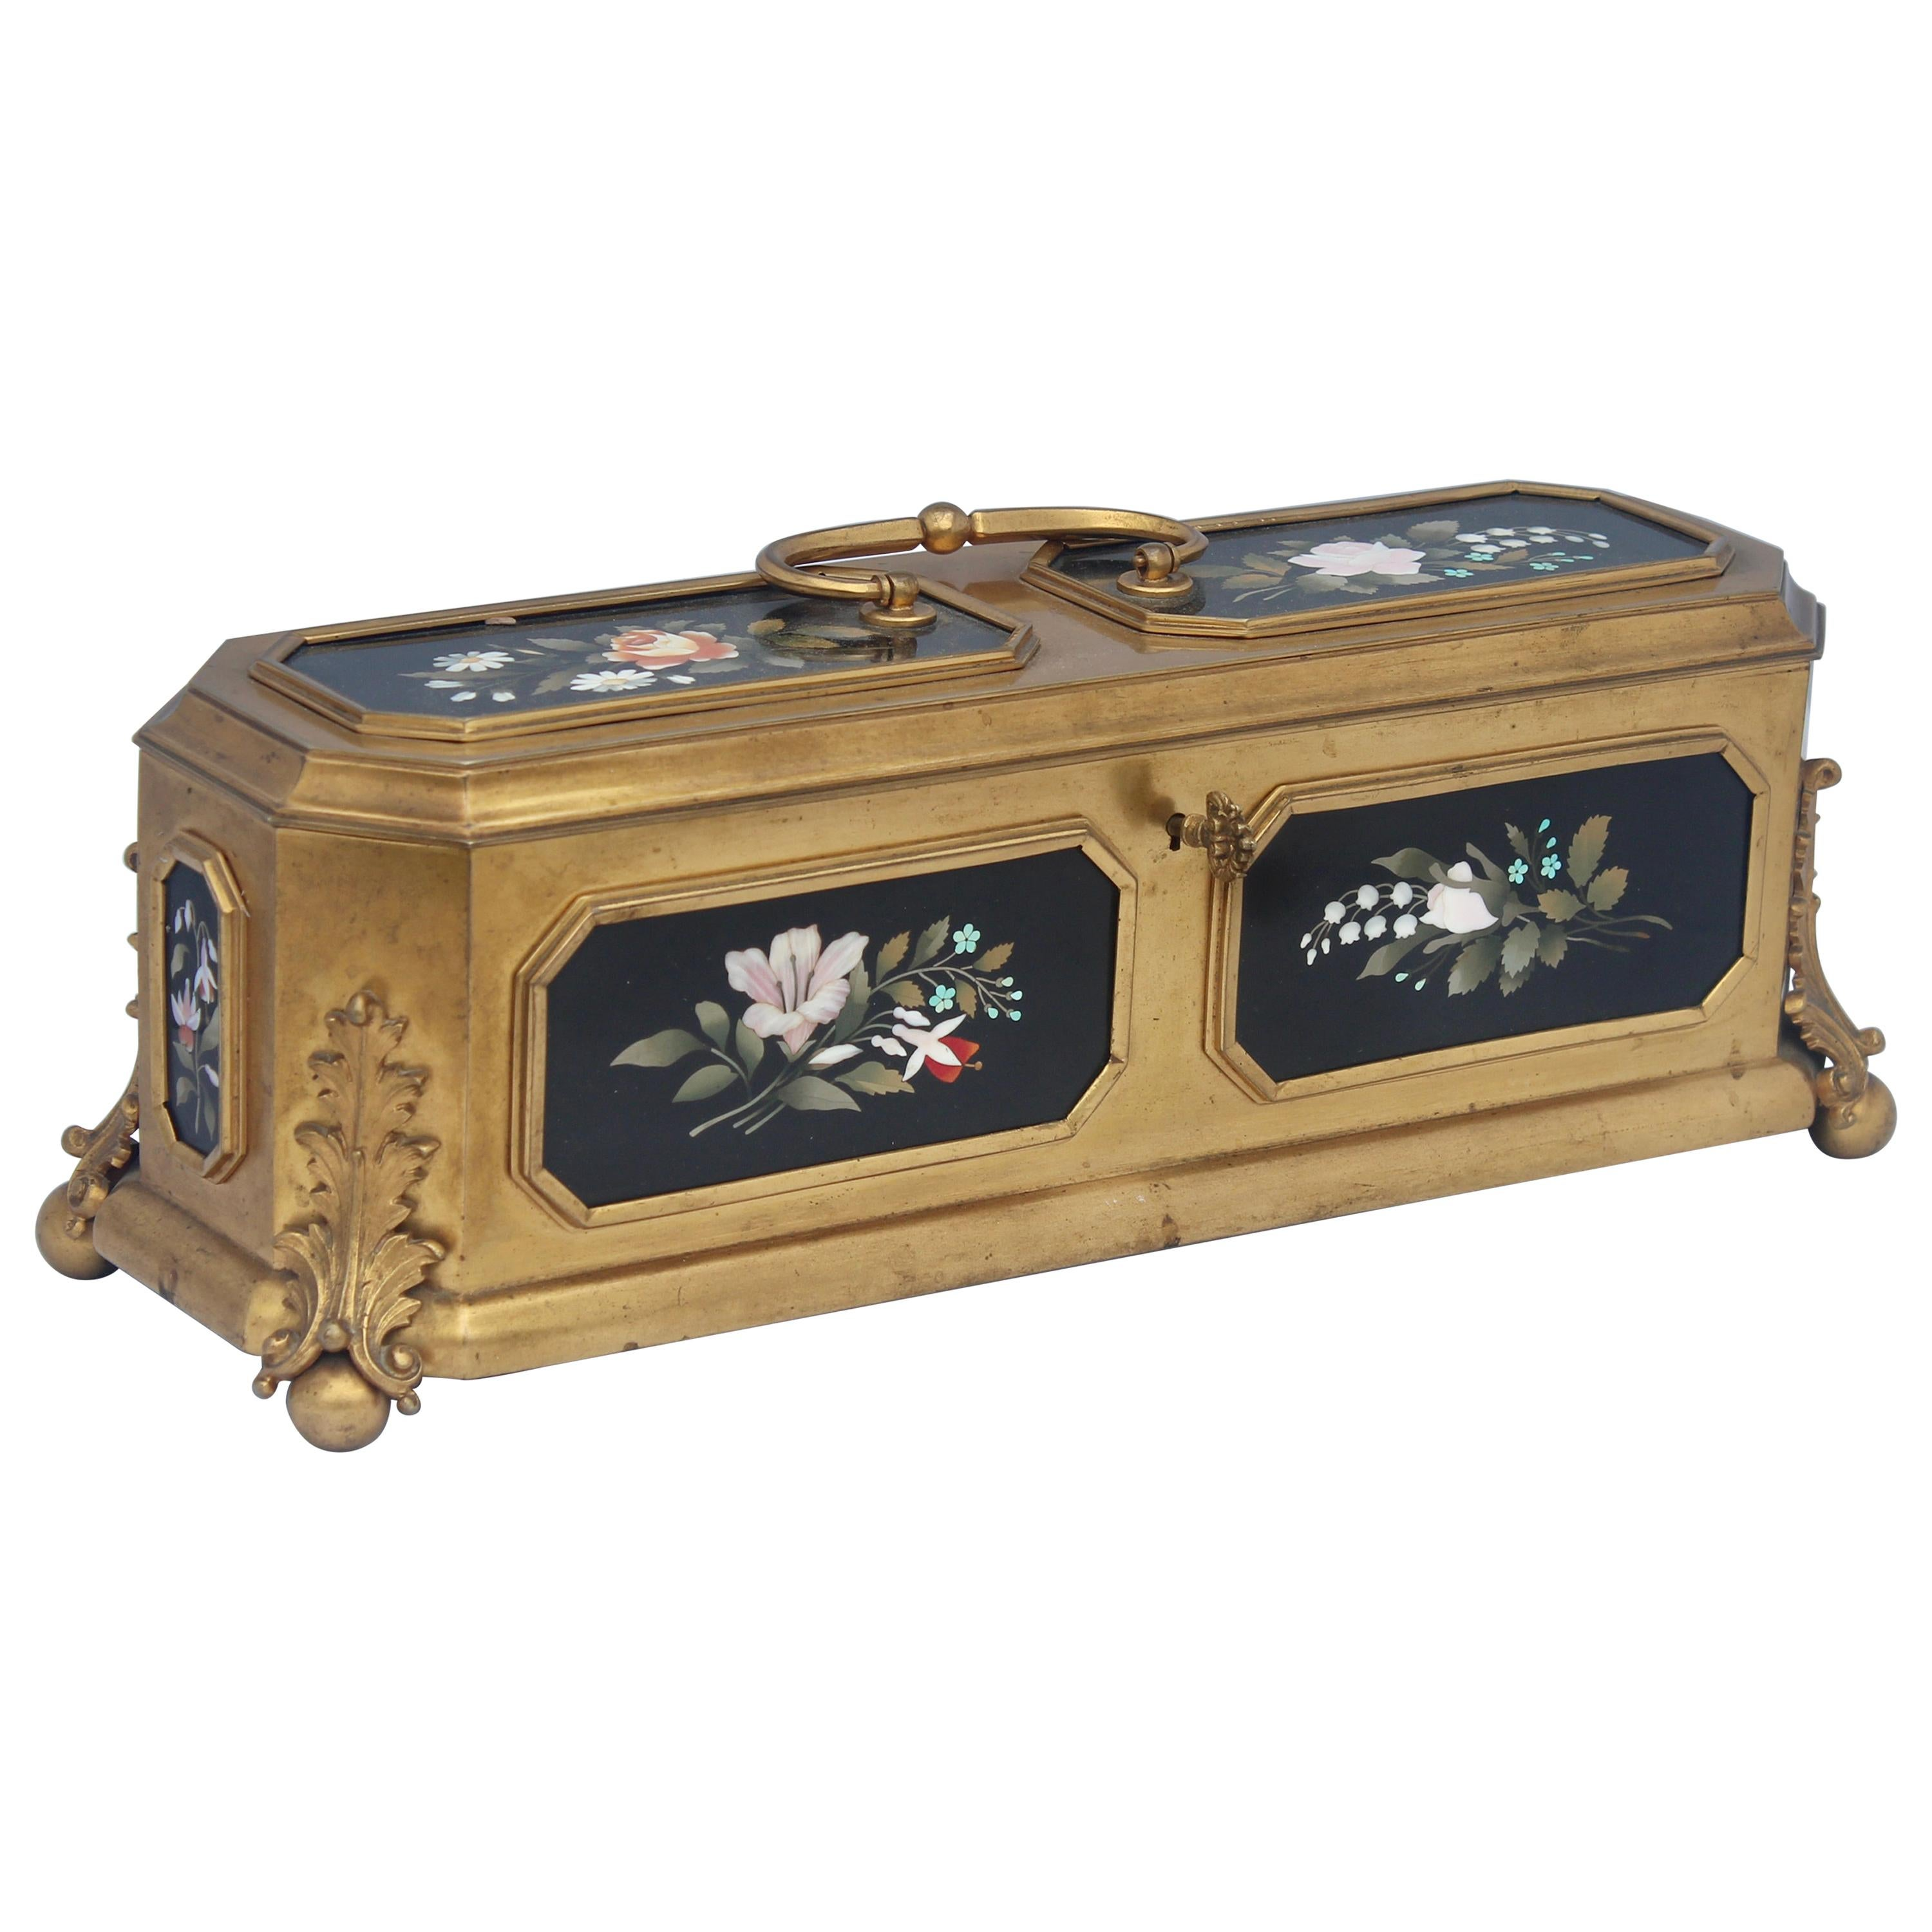 French 19th Century Gilt-Bronze and Pietra Dura Inset Jewelry Casket